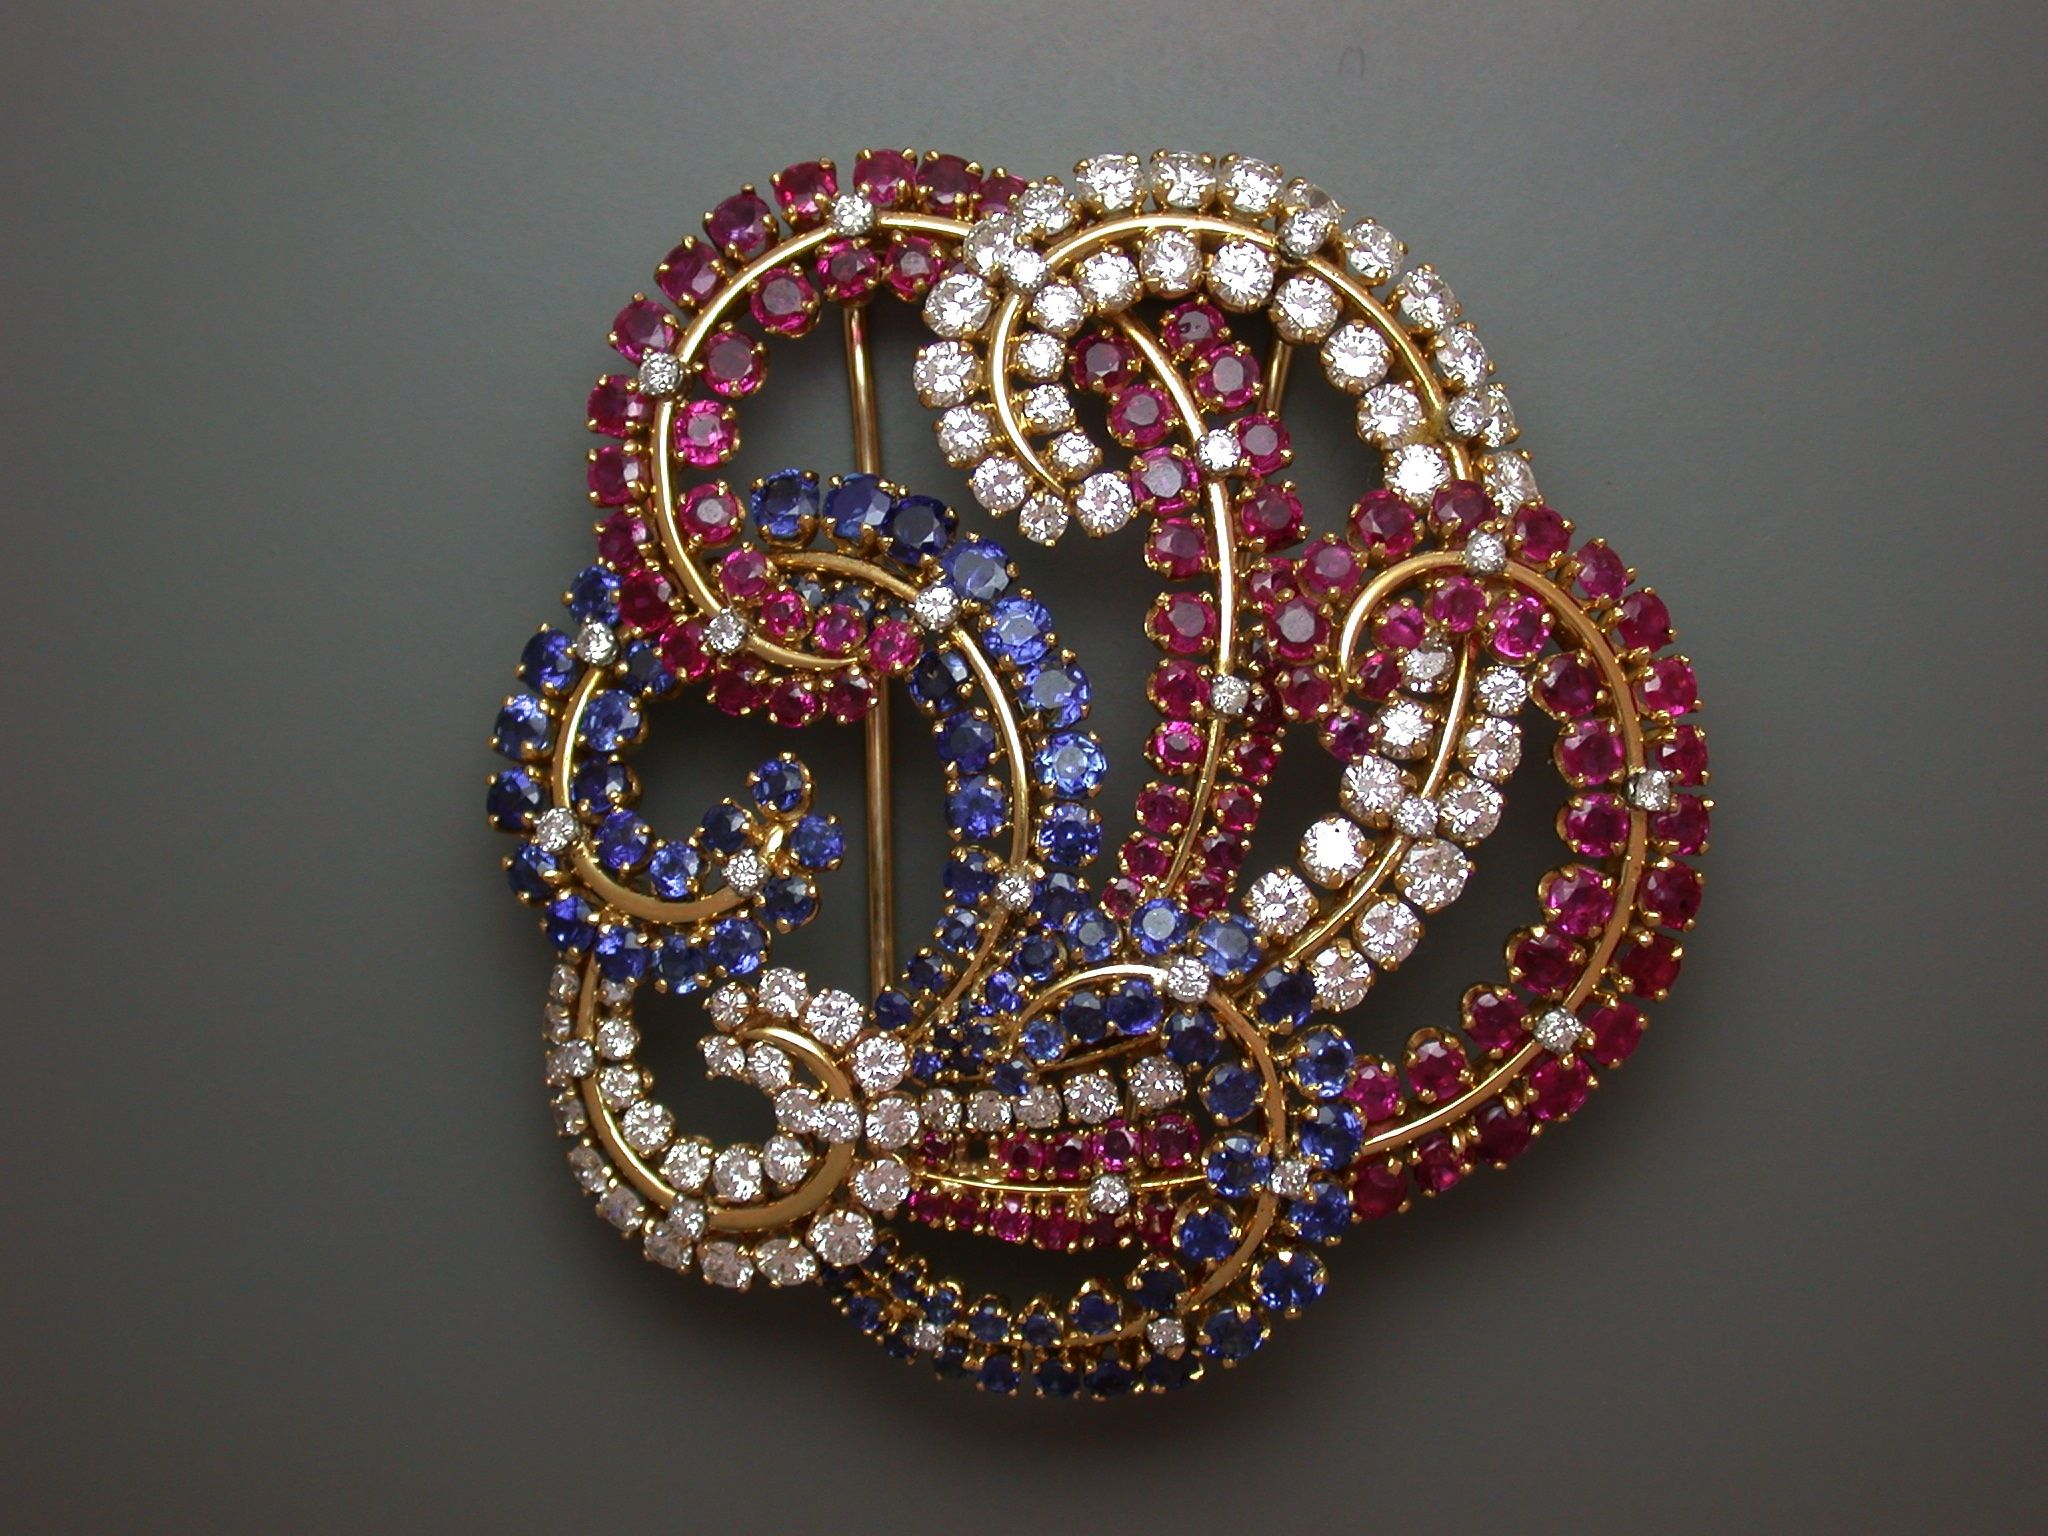 Brooch signed John Rubel, sold by Neil Marrs. In gold diamonds, rubies & sapphires.